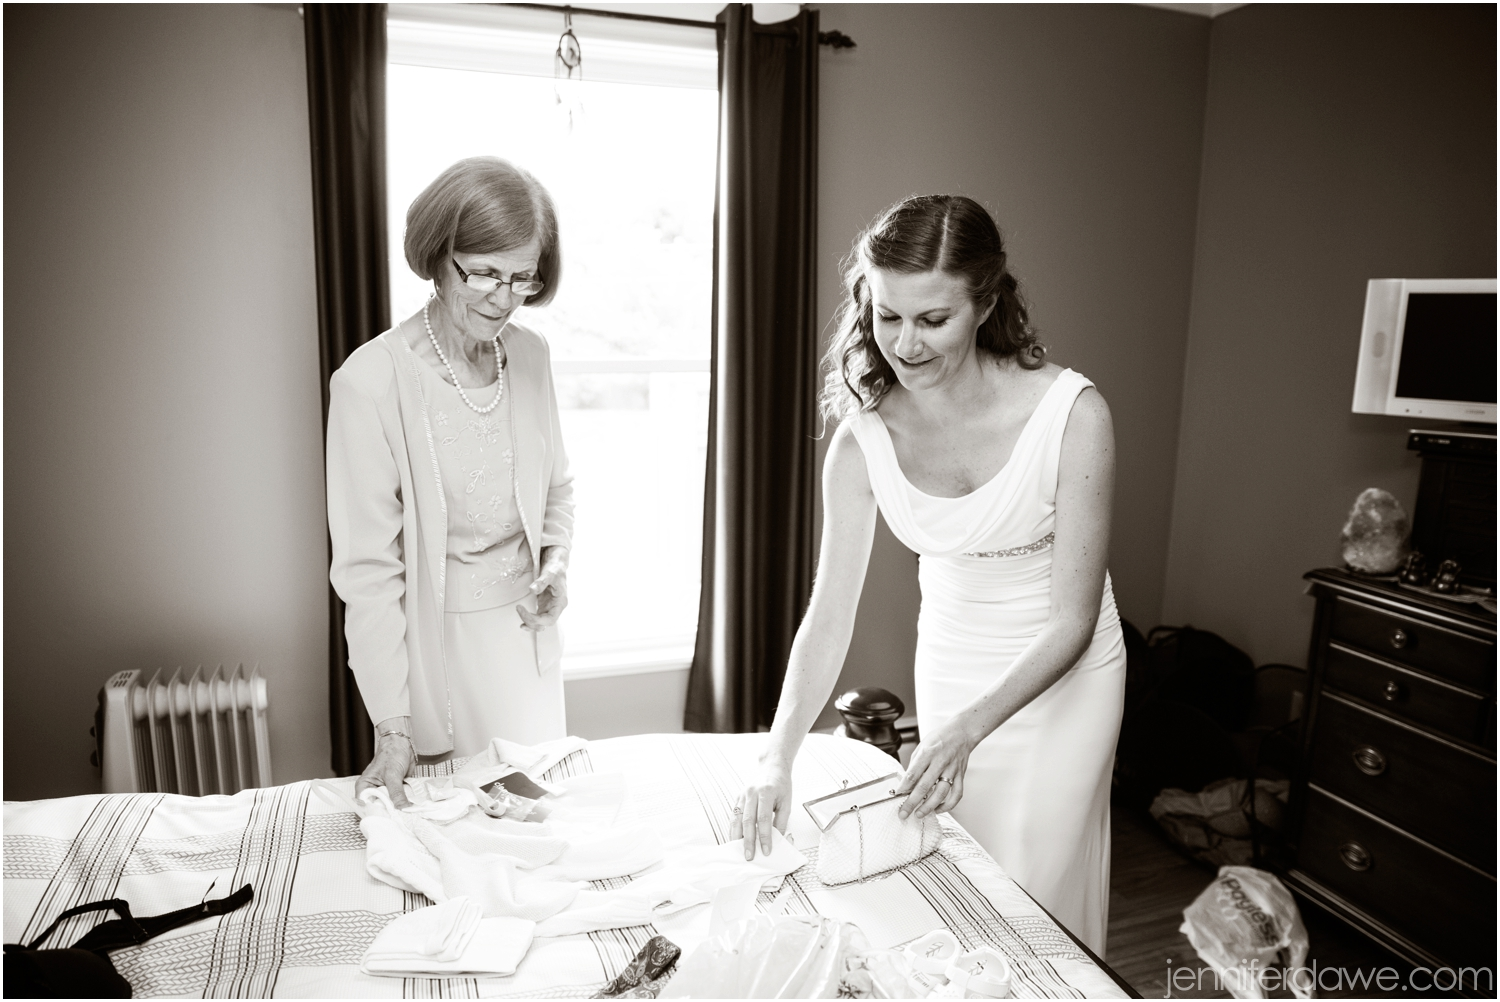 The Woodstock Wedding Photographer St John's Newfoundland Wedding Photographers Newfoundland Engagement Photographers Jennifer Dawe Photography_3084